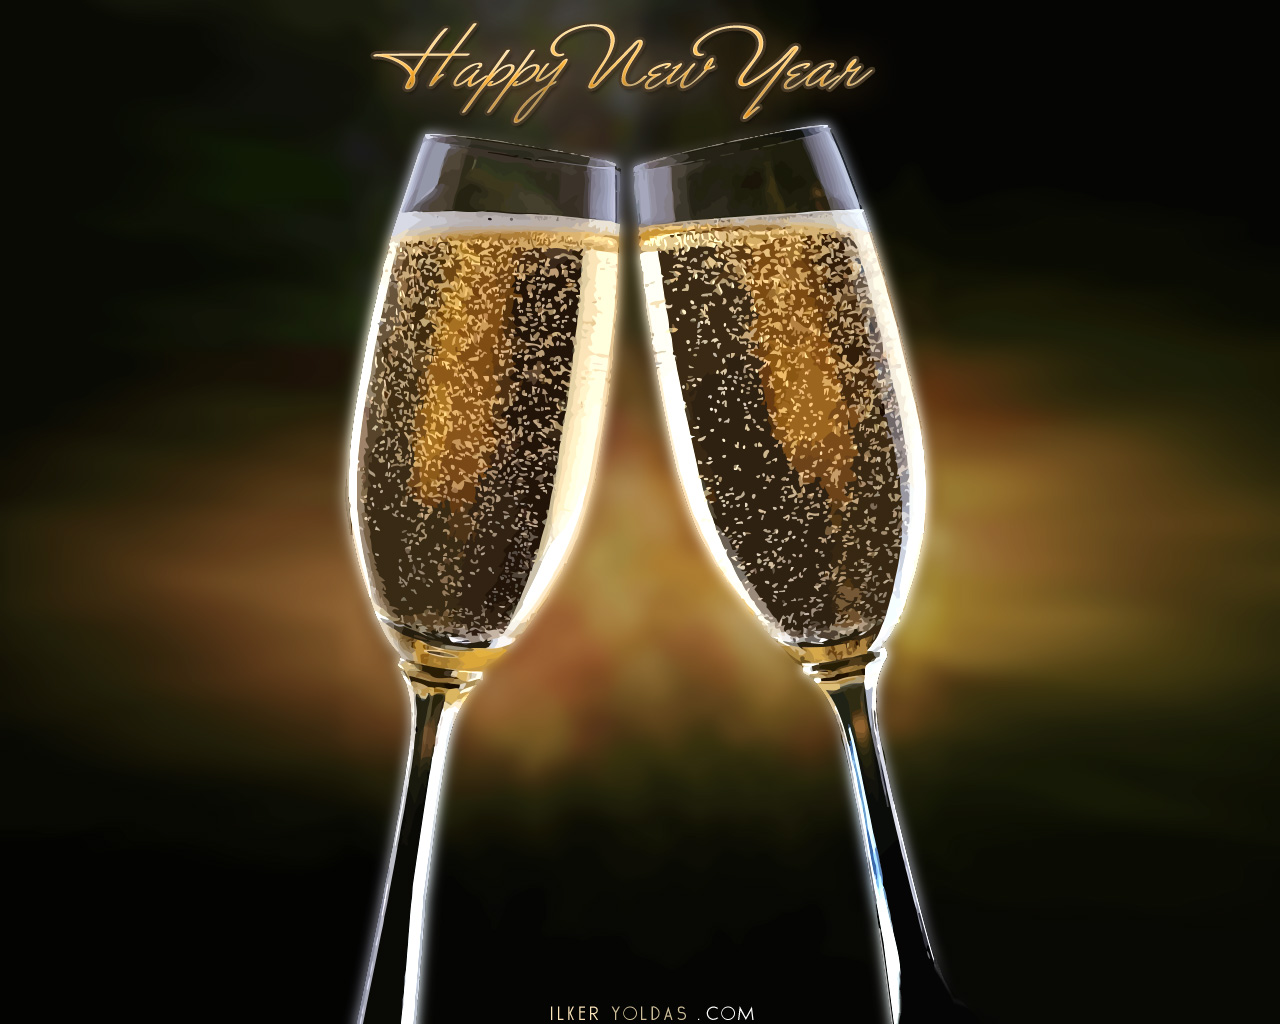 http://4.bp.blogspot.com/-hgmuE4Og1ZI/TwB9F6zOKSI/AAAAAAAABIA/XG3VpoSadfU/s1600/celebrate-happy-new-year-wallpaper1.jpeg